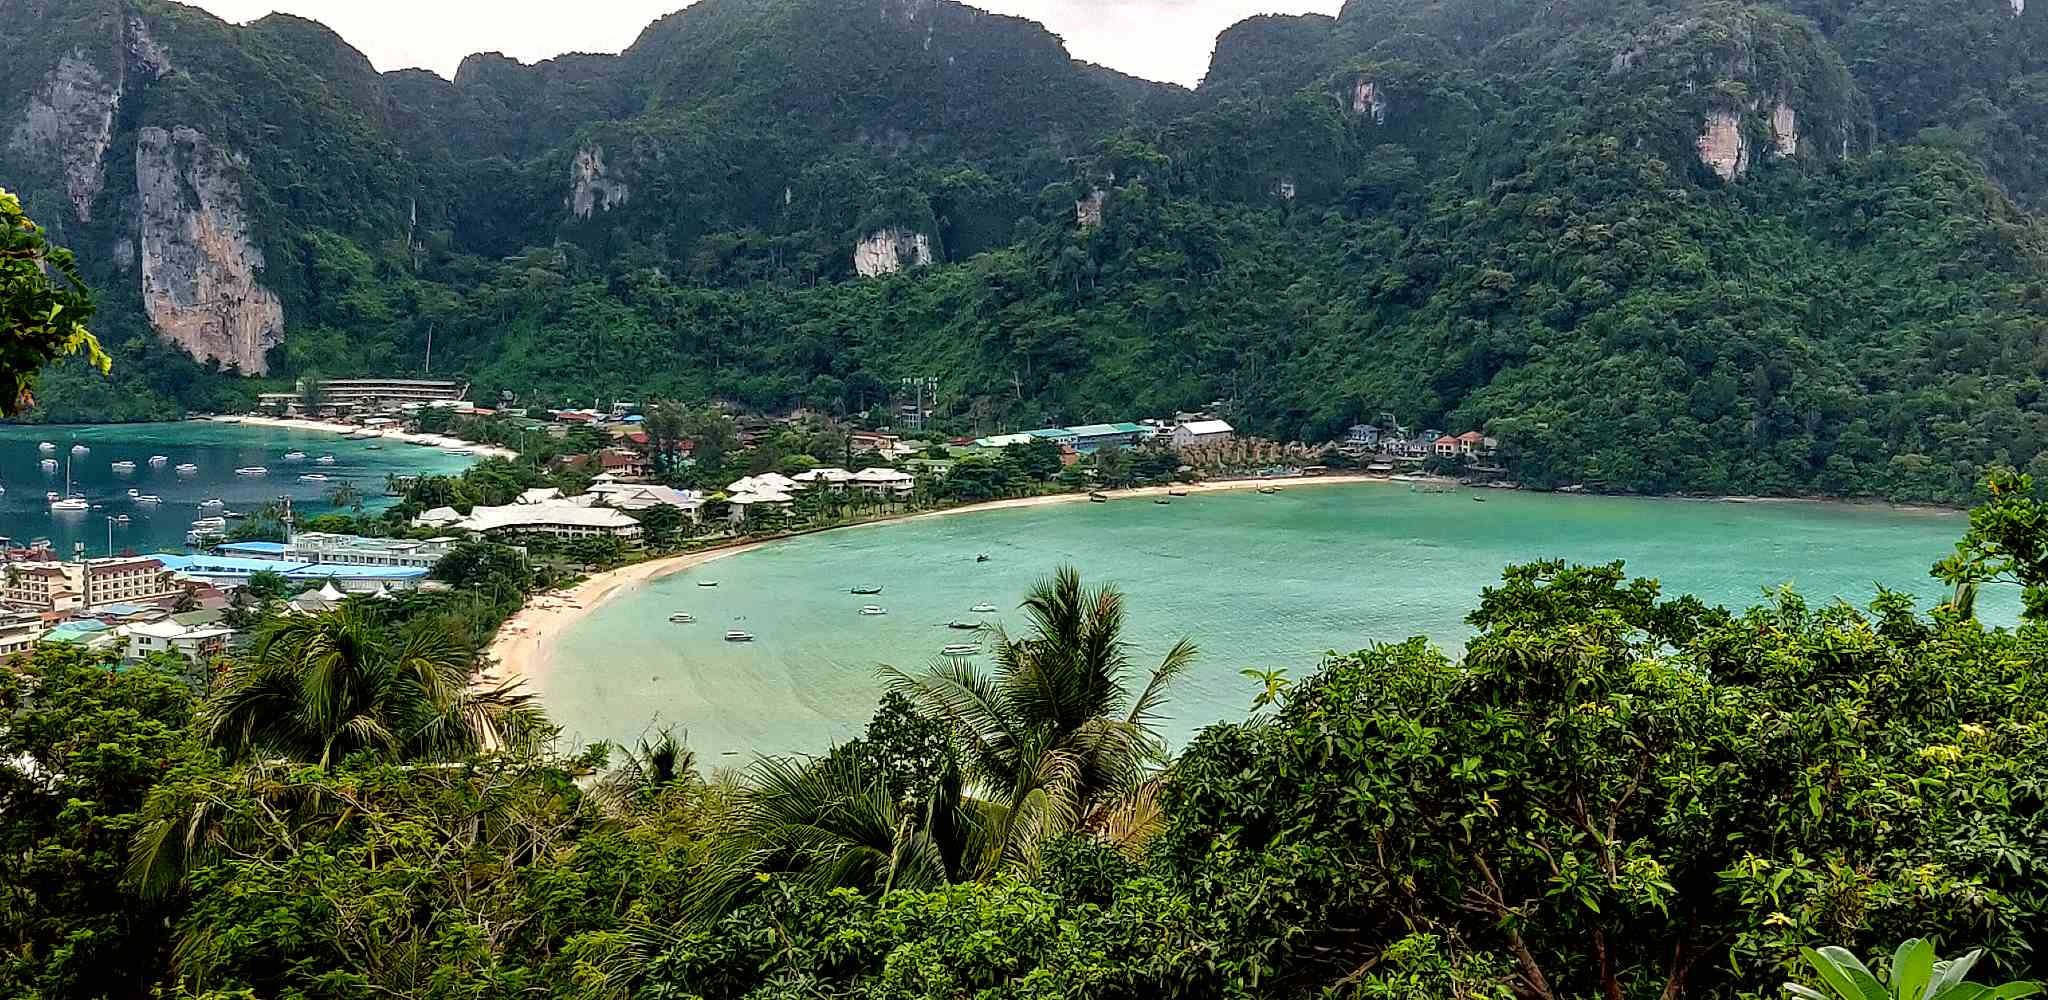 Koh Phi Phi island as seen from the viewpoint